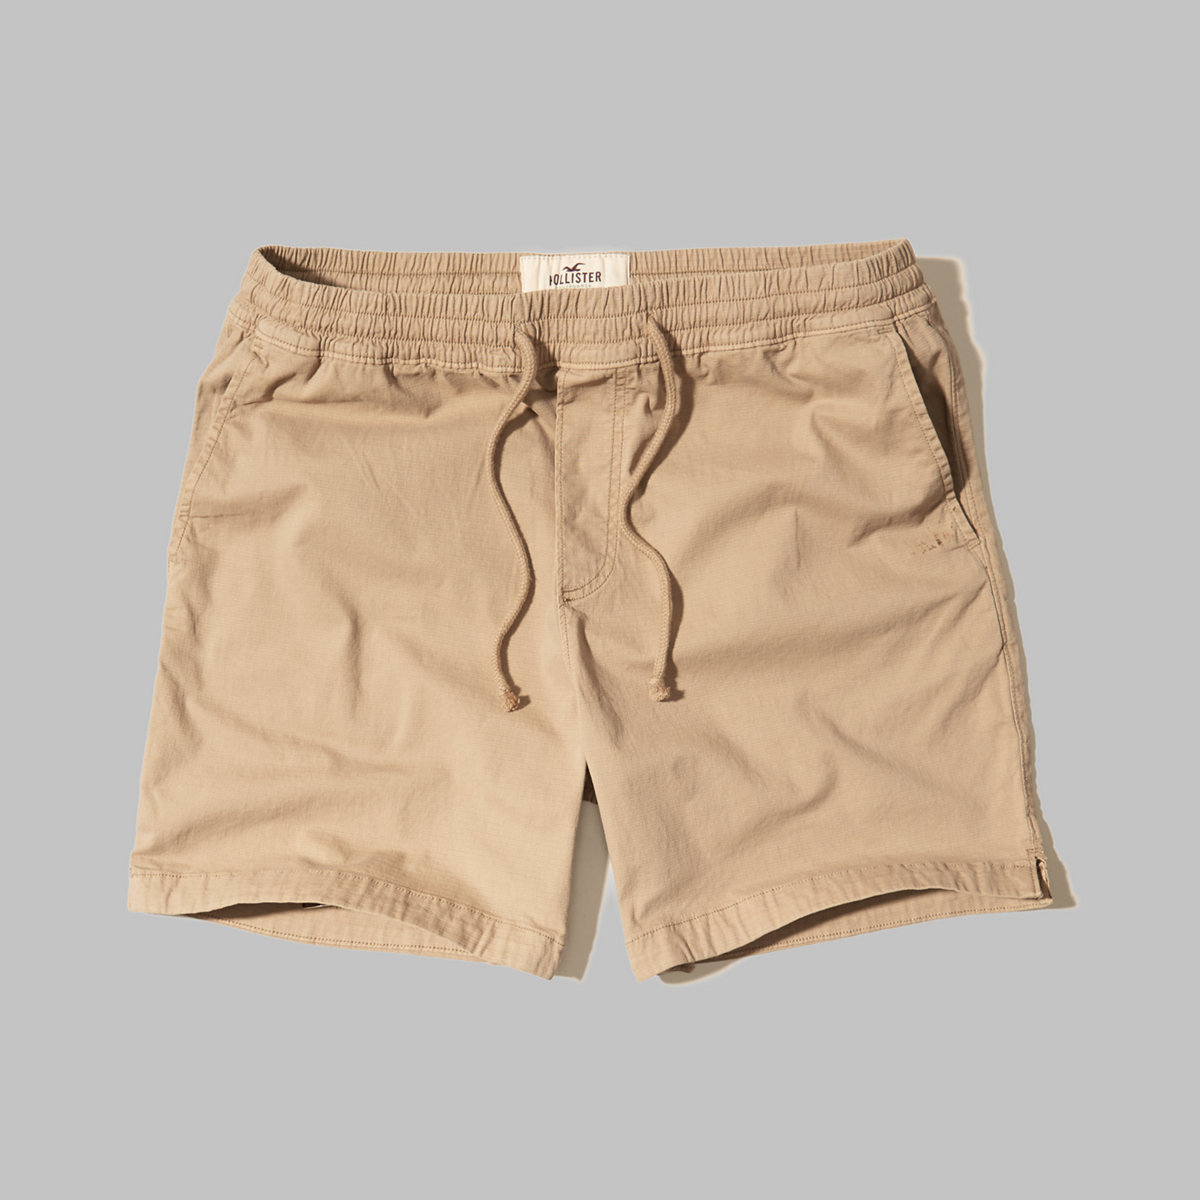 Hollister Beach Prep Fit Pull-On Twill Shorts